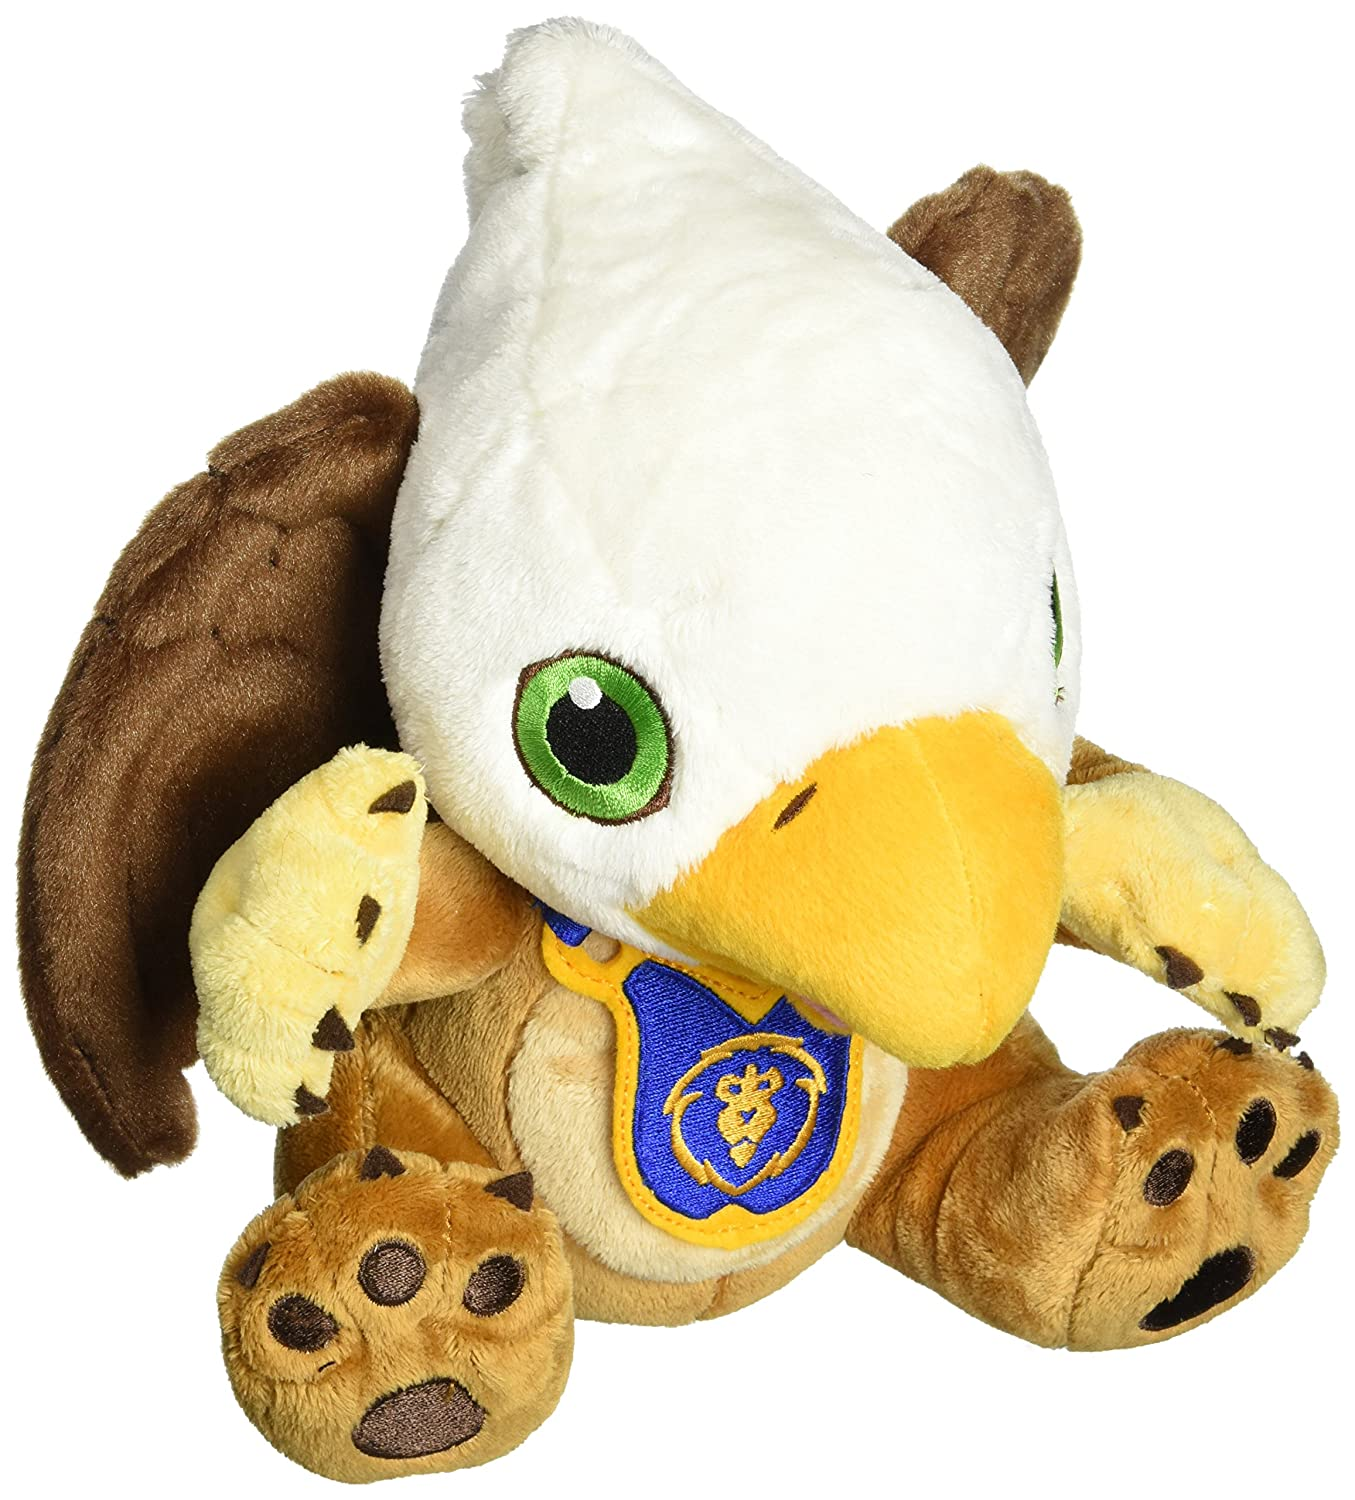 Amazon.com: World of Warcraft Gryphon Hatchling Plush with Unscratched Loot Card by Blizzard Entertainment: Toys & Games